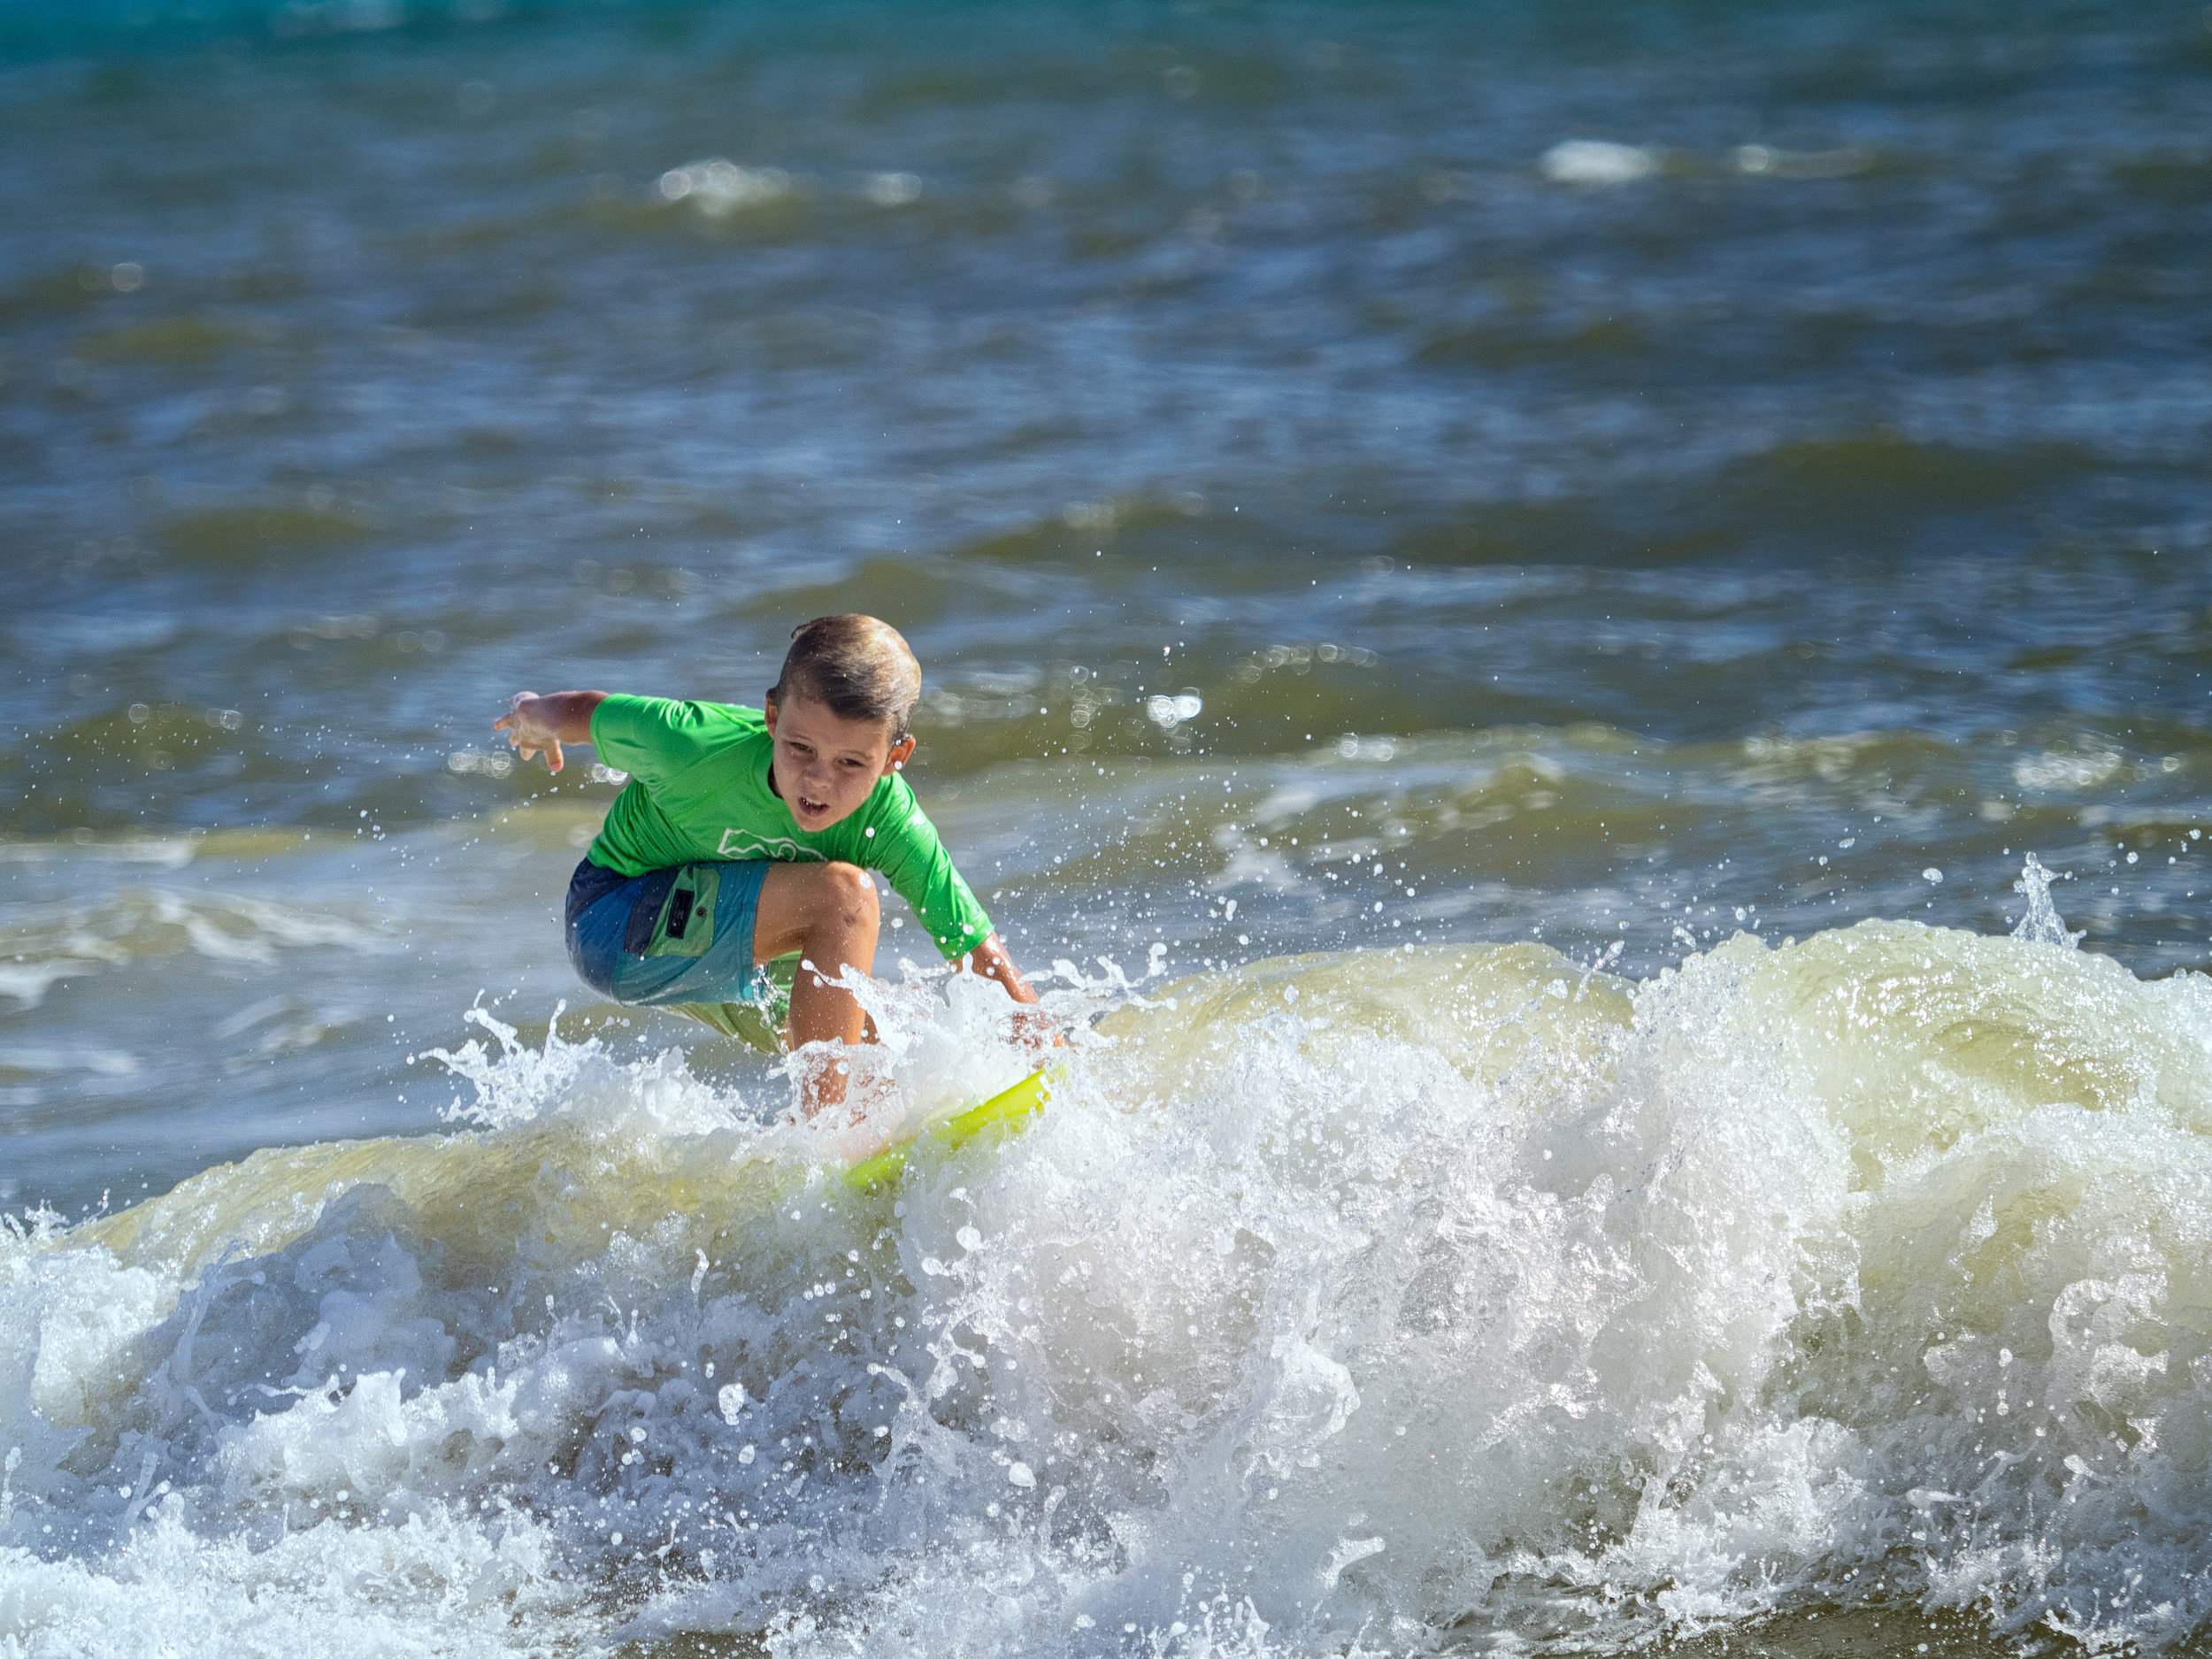 Kailua Shorebreak Classic - Keiki Ripping in the Waves